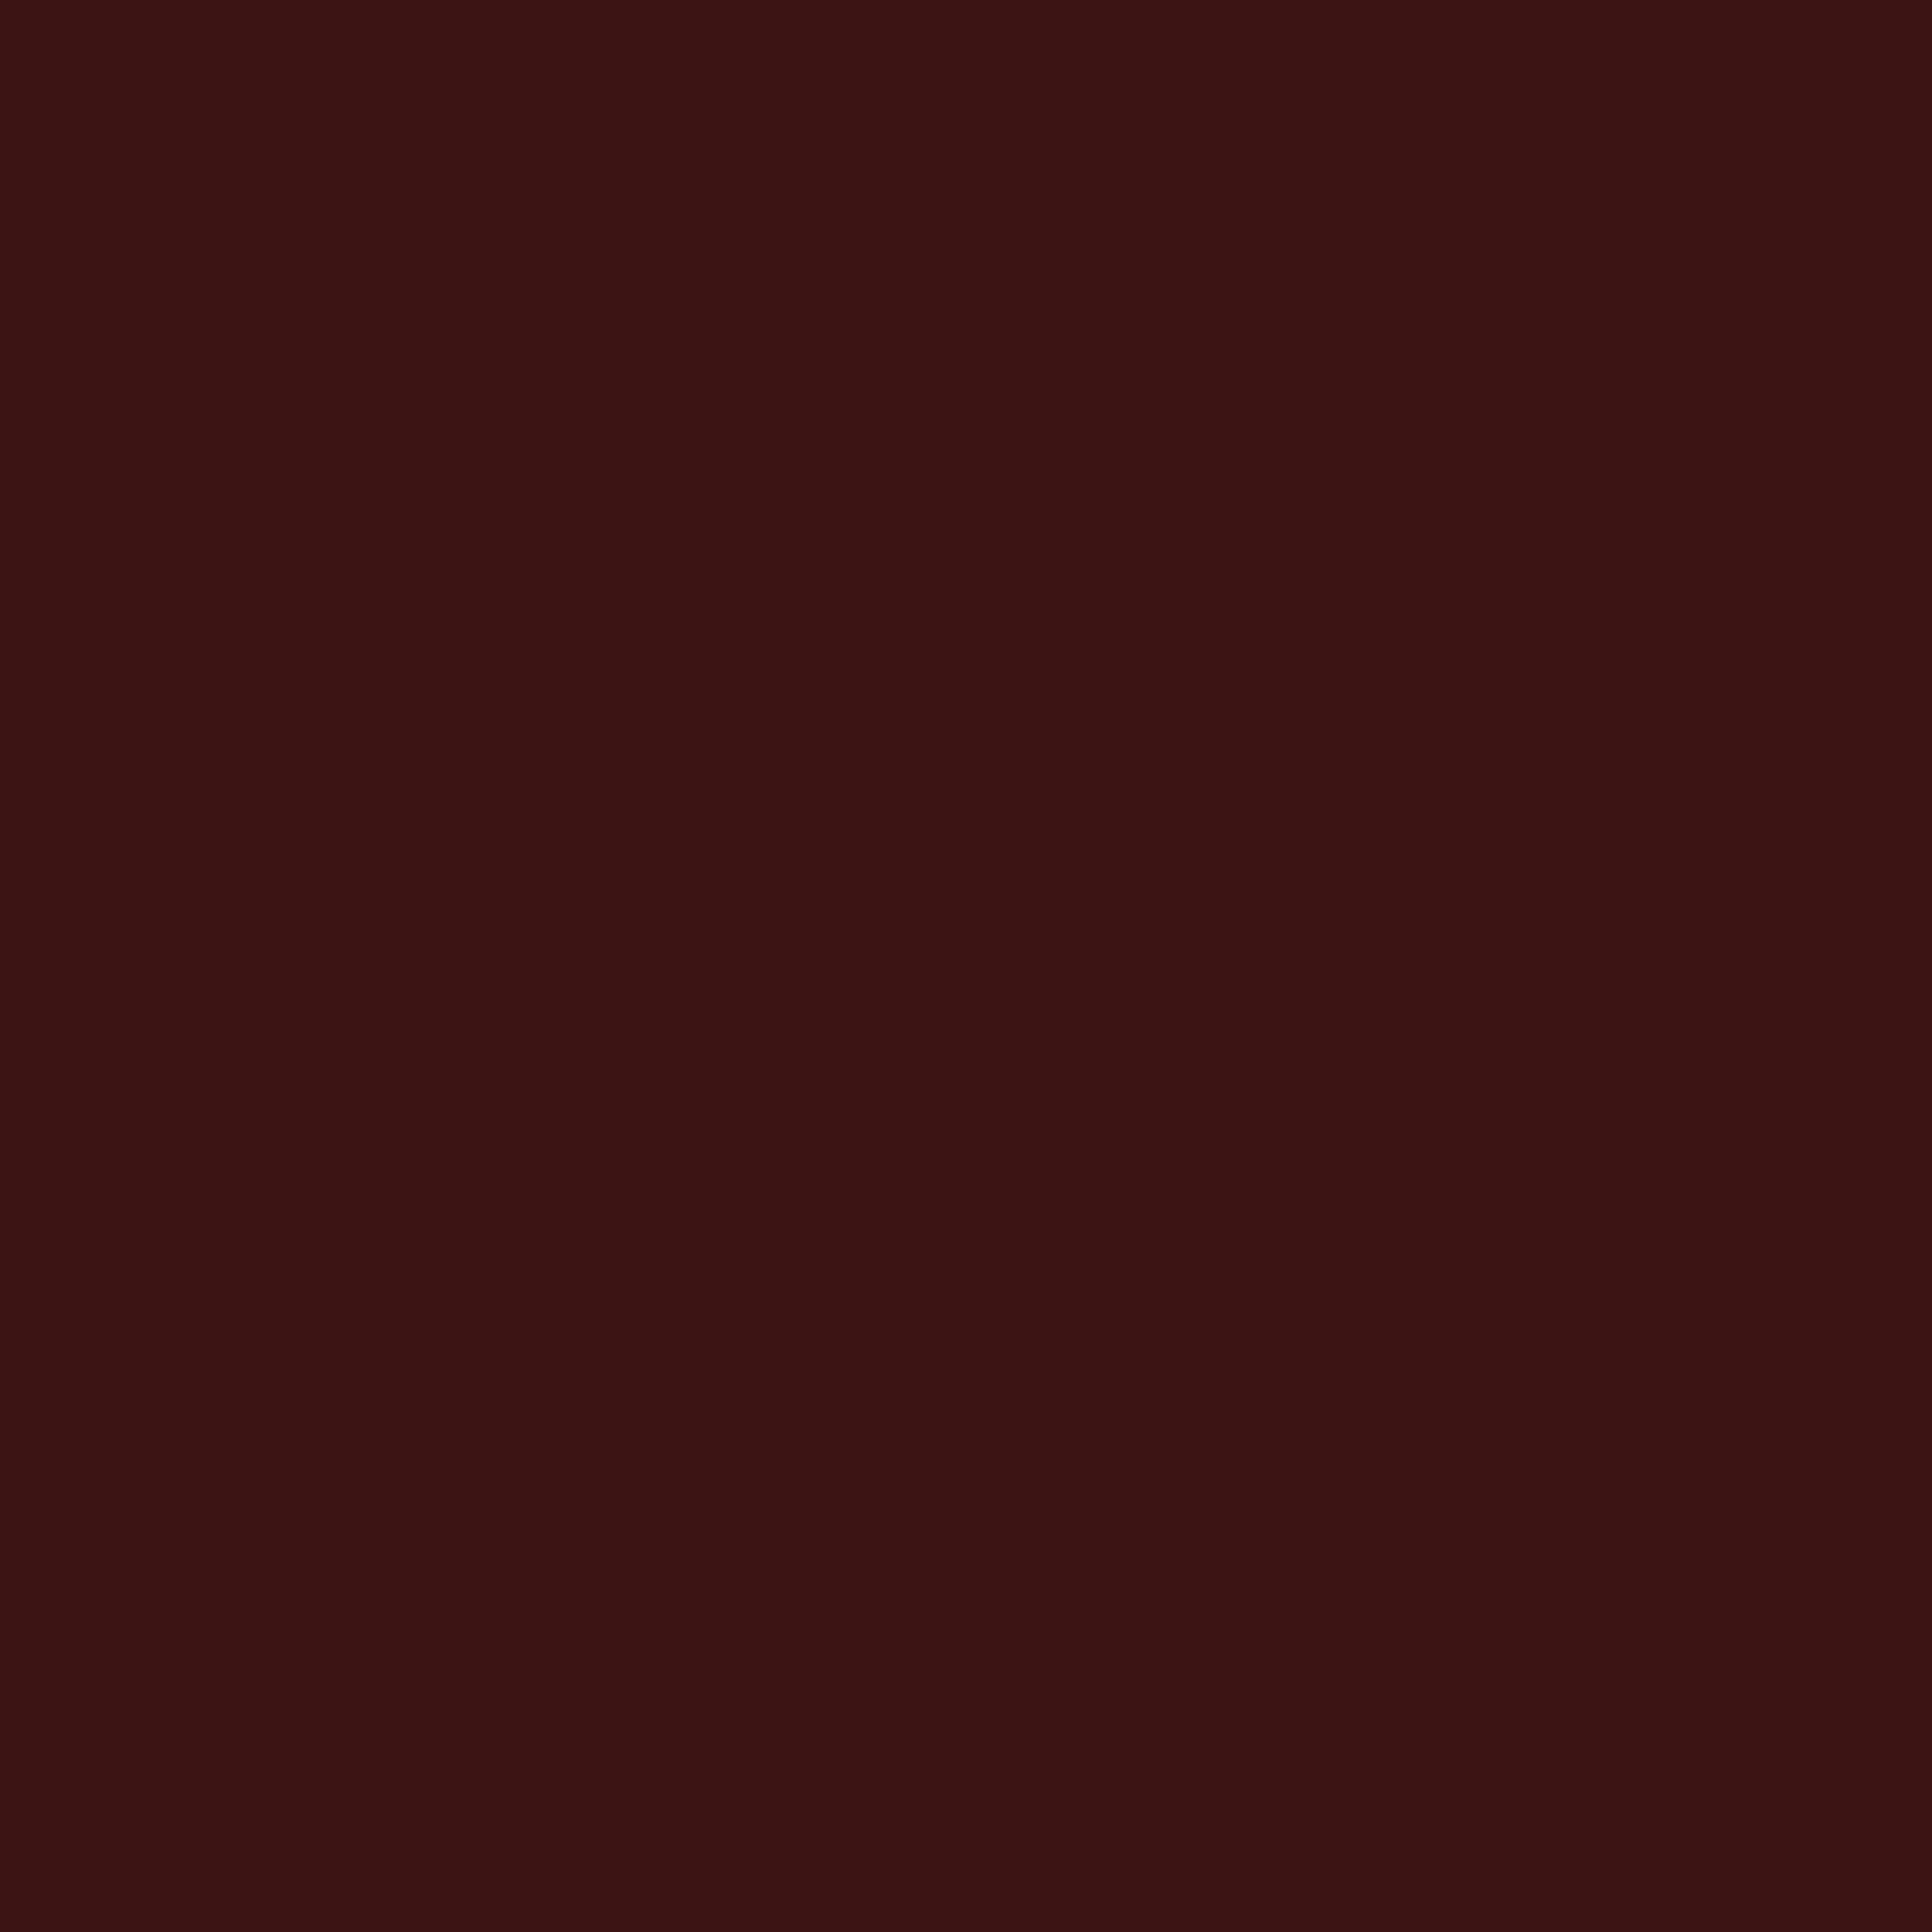 2732x2732 Dark Sienna Solid Color Background